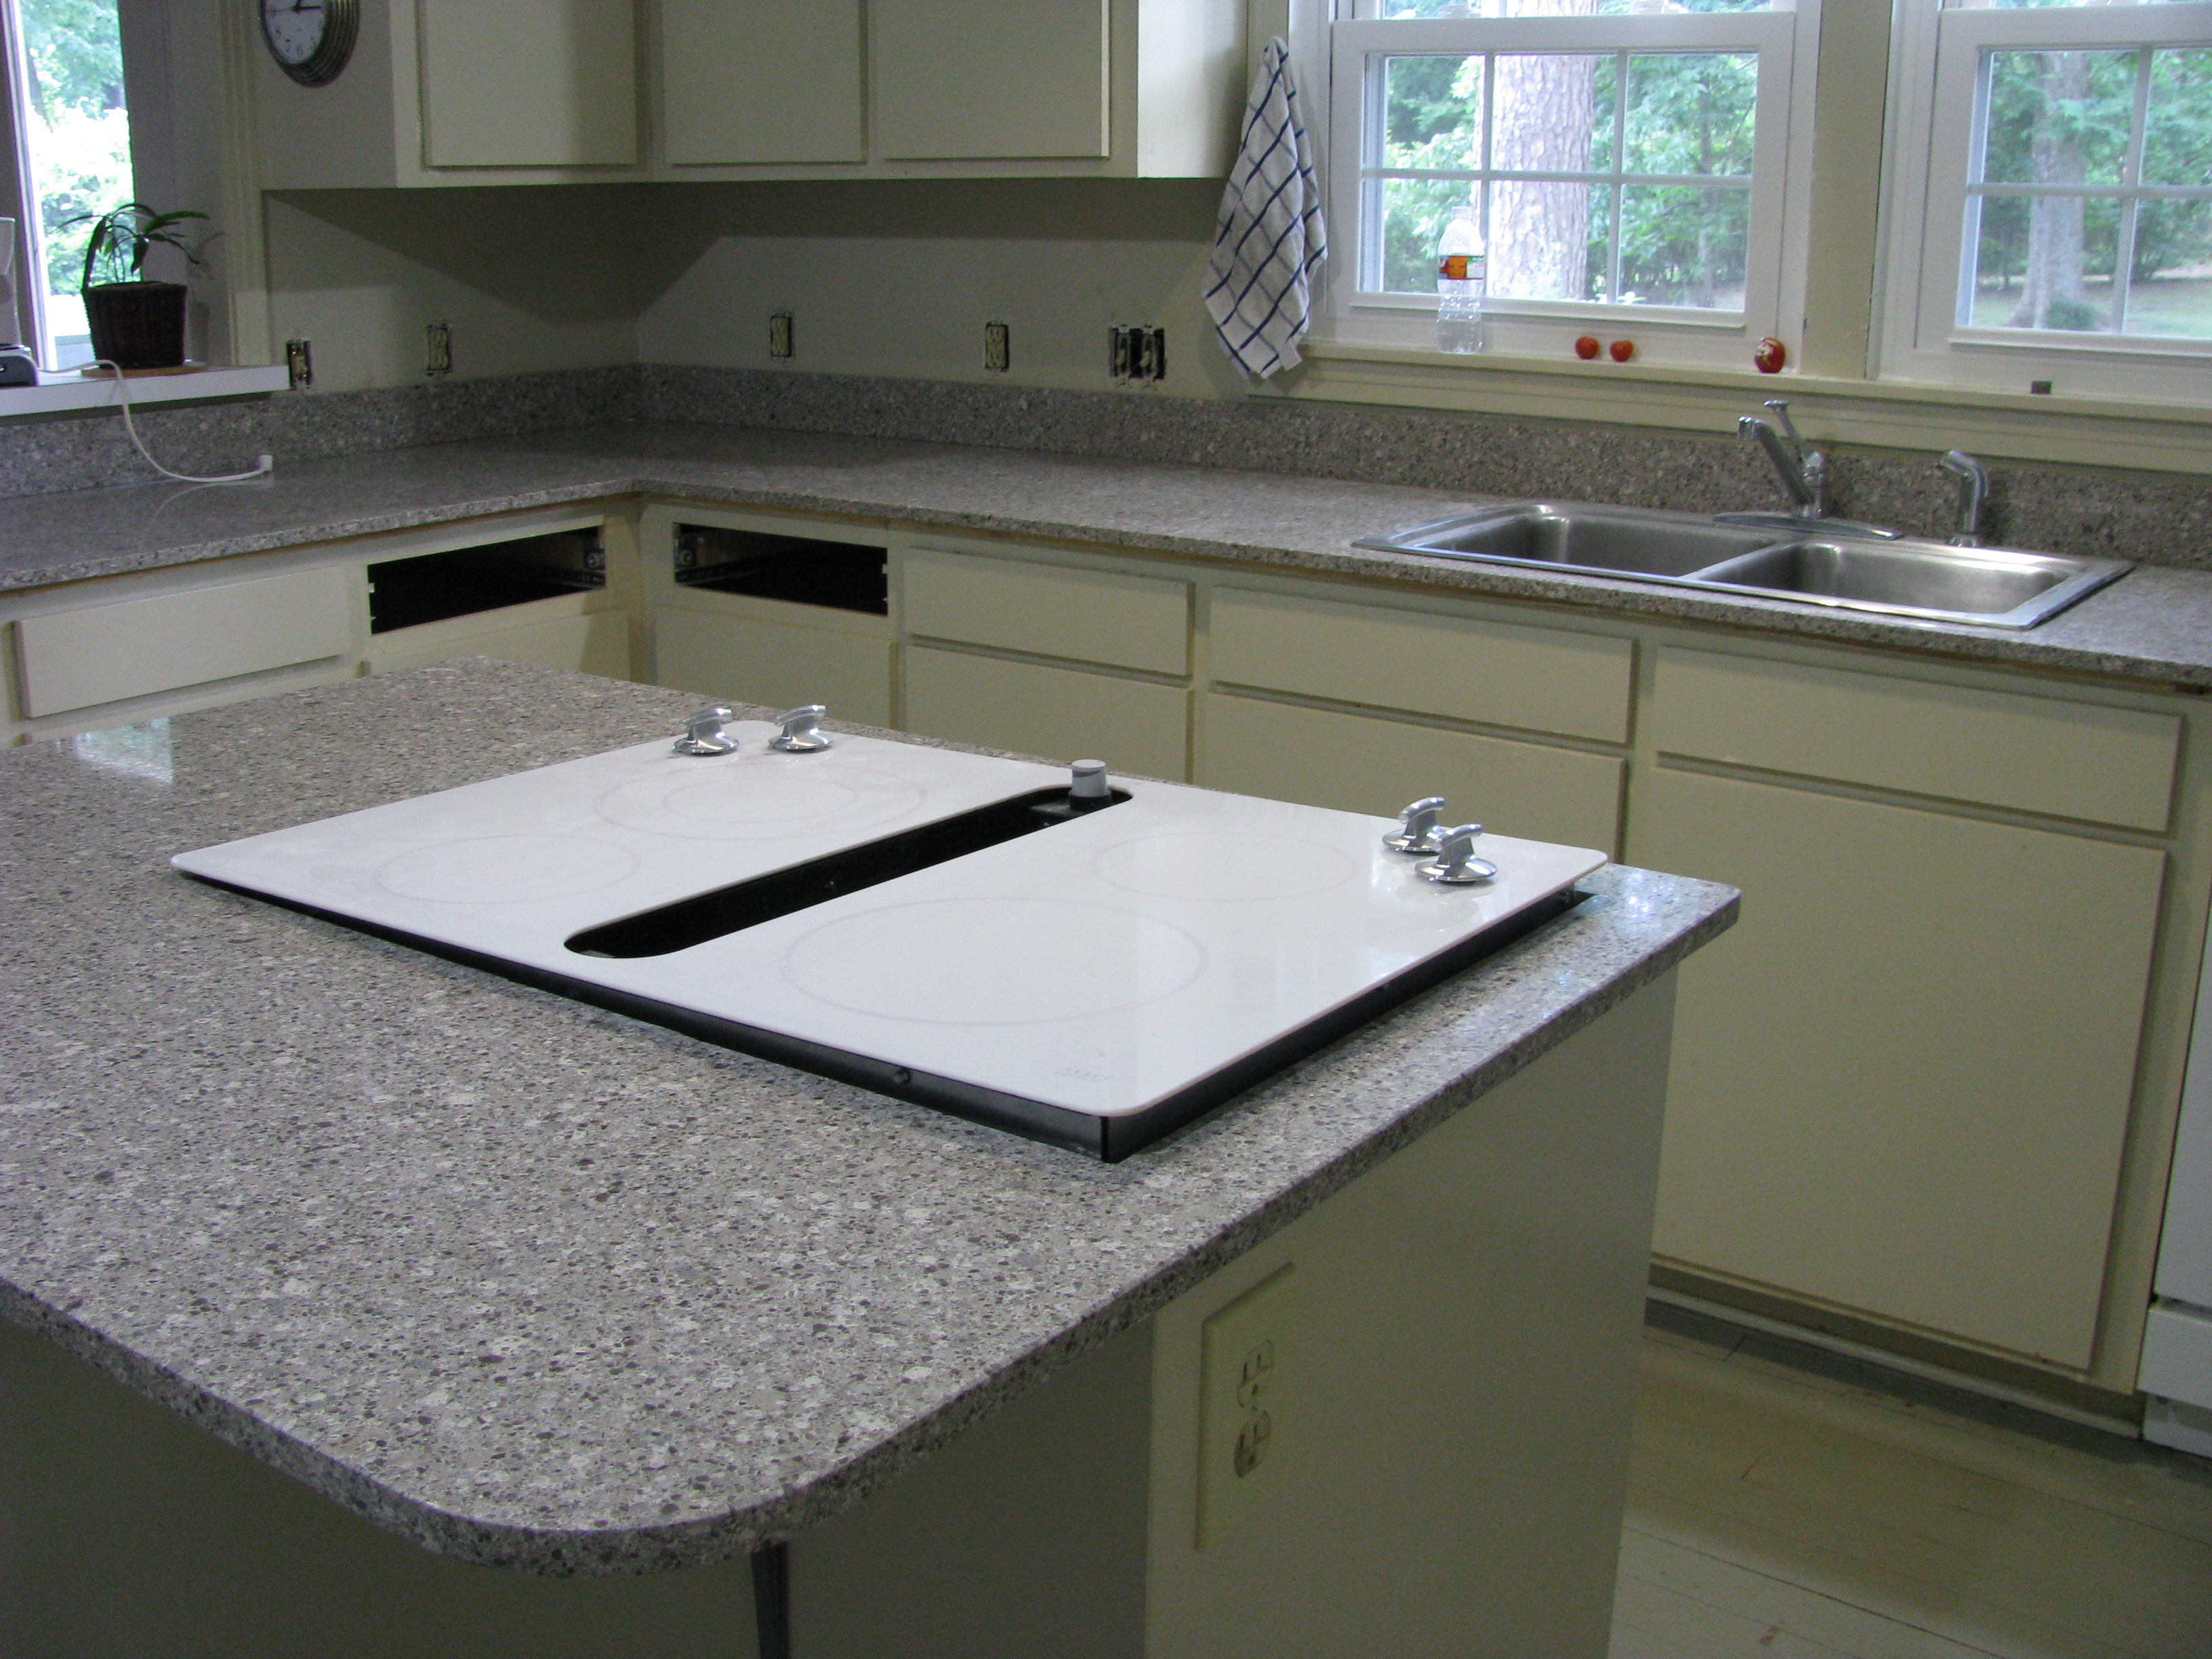 Do it yourself corian countertop repair ehow uk for Corian countertops